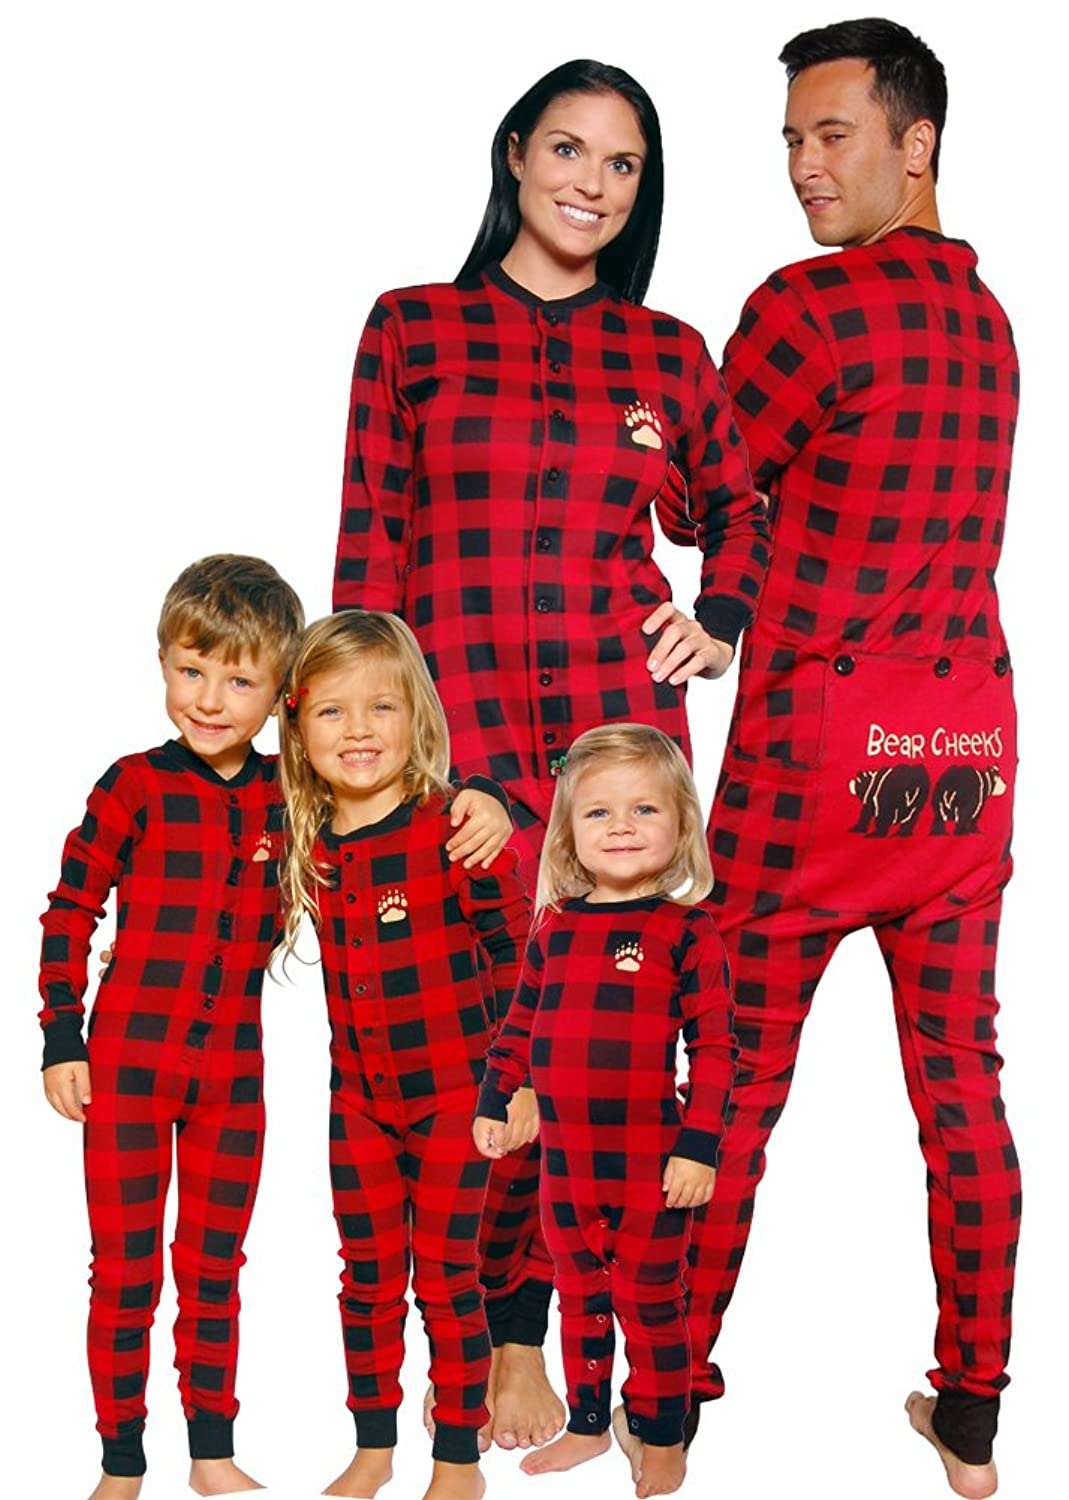 Amazon.com: Lazy One Bear Cheeks Adult Red & Black Plaid Flapjack ...